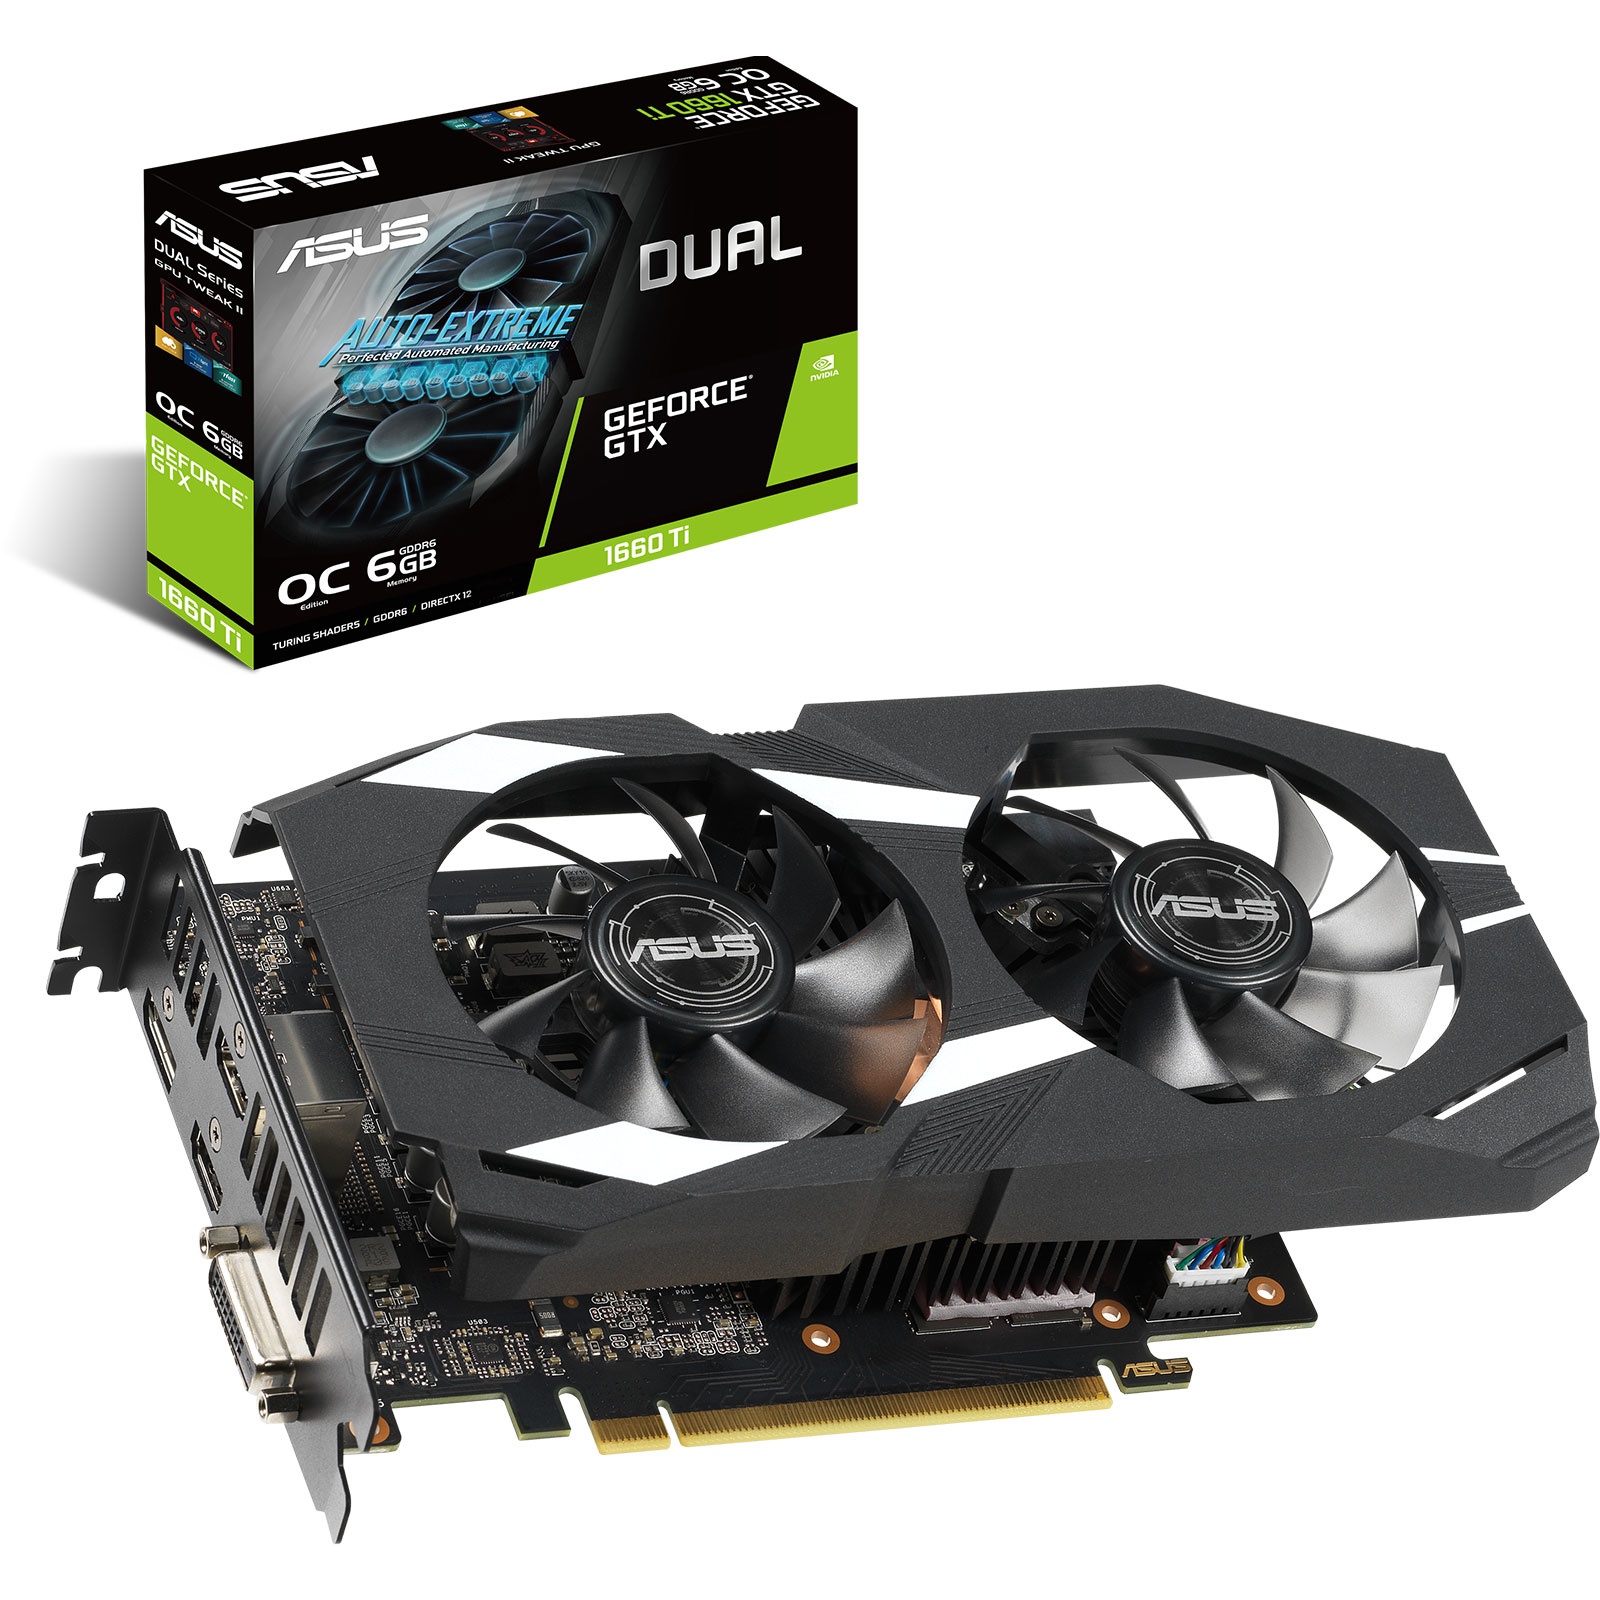 Carte graphique ASUS GeForce GTX 1660 Ti DUAL-GTX1660TI-O6G 6 Go GDDR6 - Dual HDMI/DVI/DisplayPort - PCI Express (NVIDIA GeForce GTX 1660 Ti)